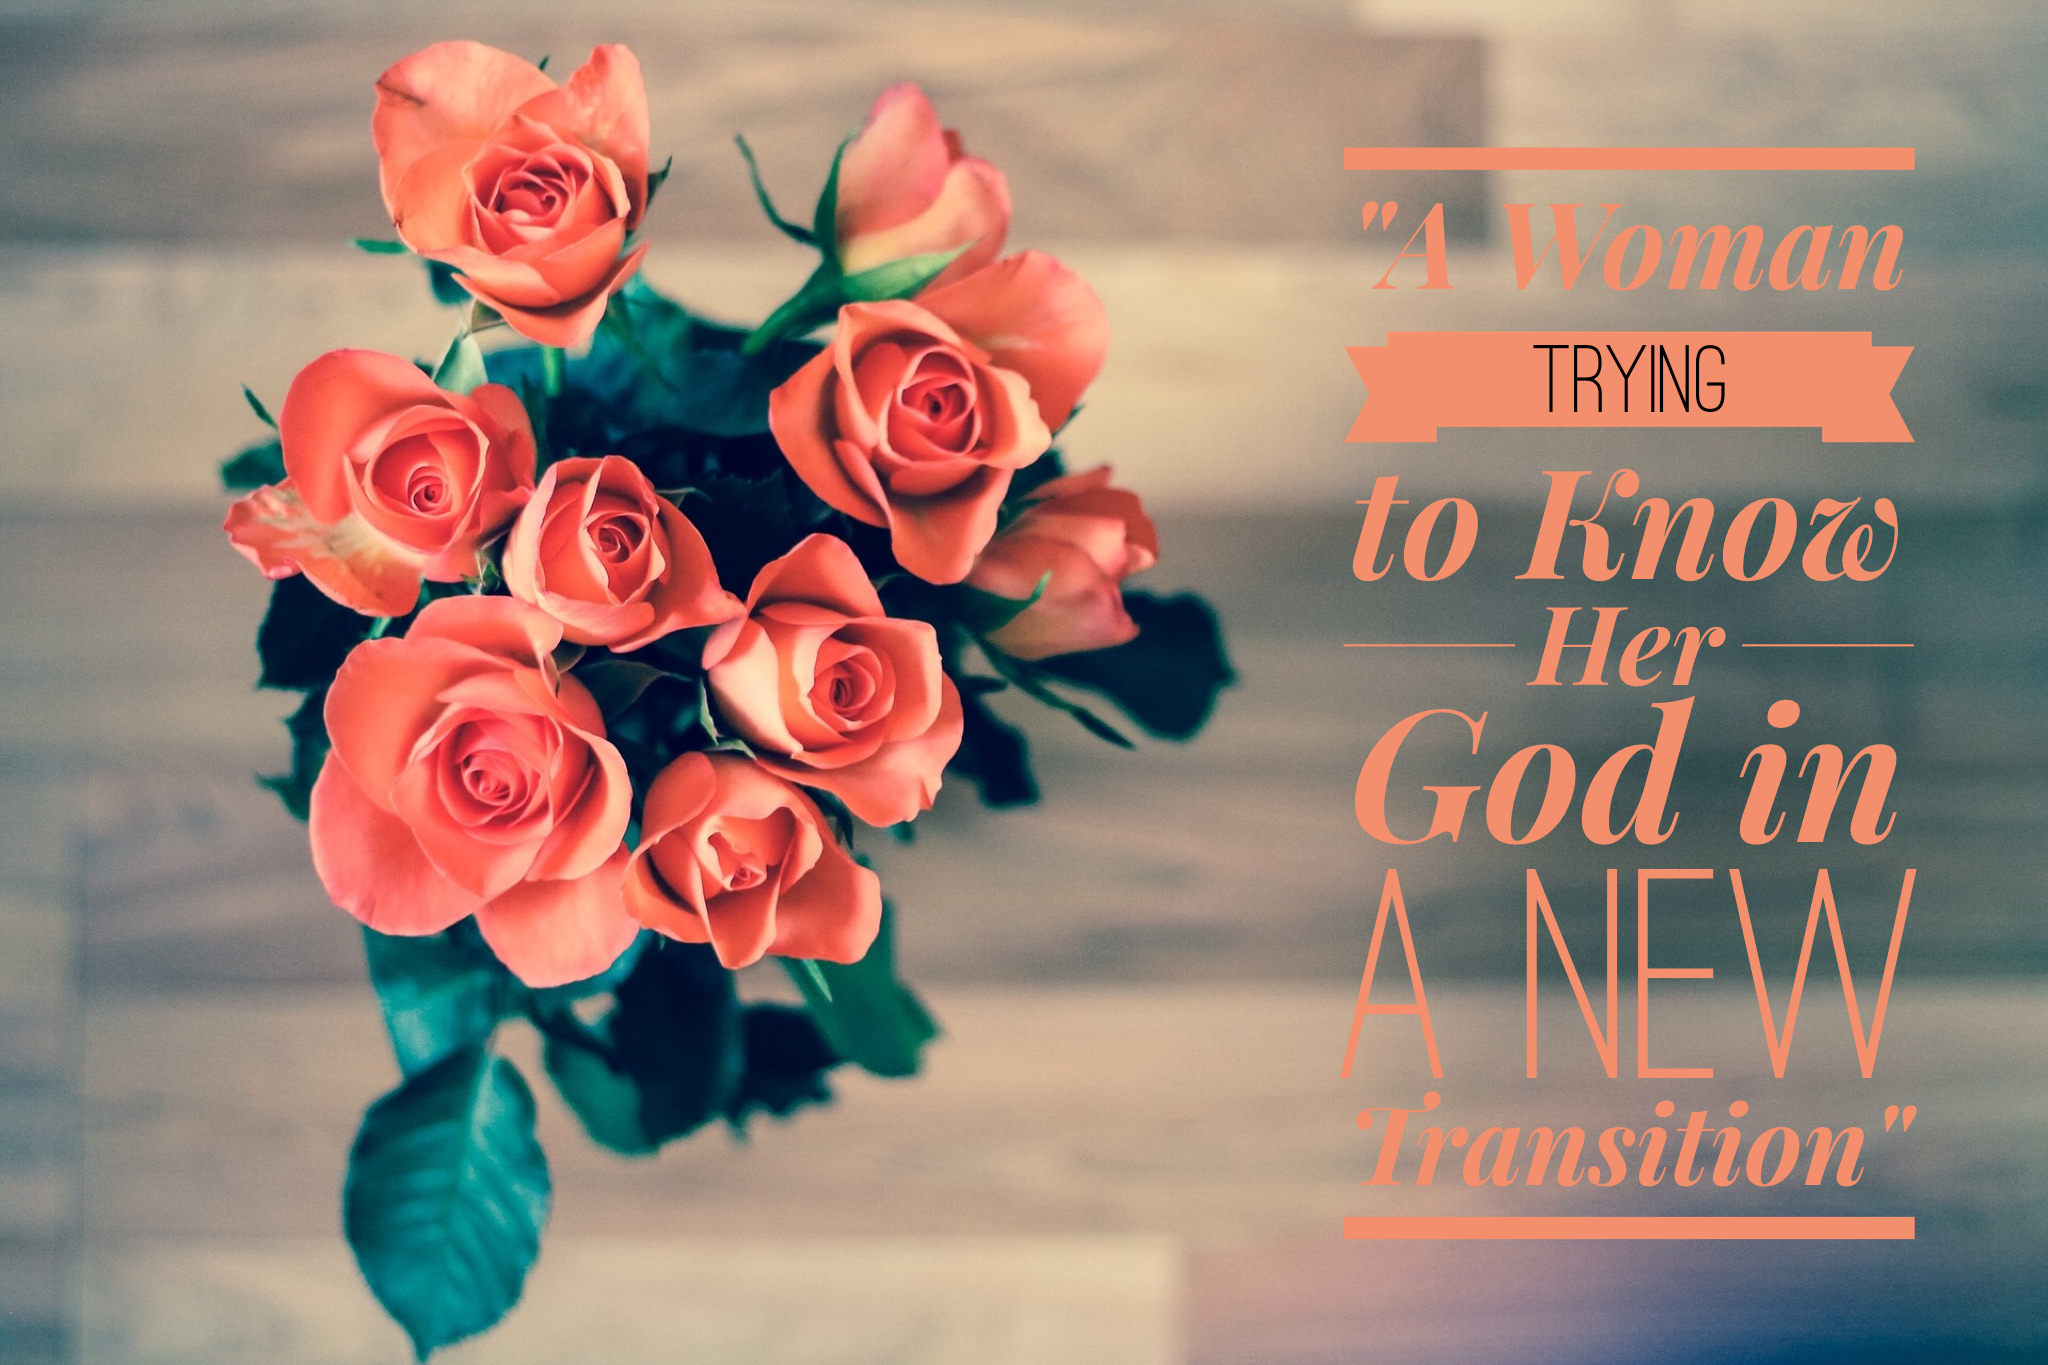 A Woman Seeking to Know Her God in a New Transition | www.codyandras.com/blog/2017/8/11/a-woman-seeking-to-know-her-god-in-a-new-transition